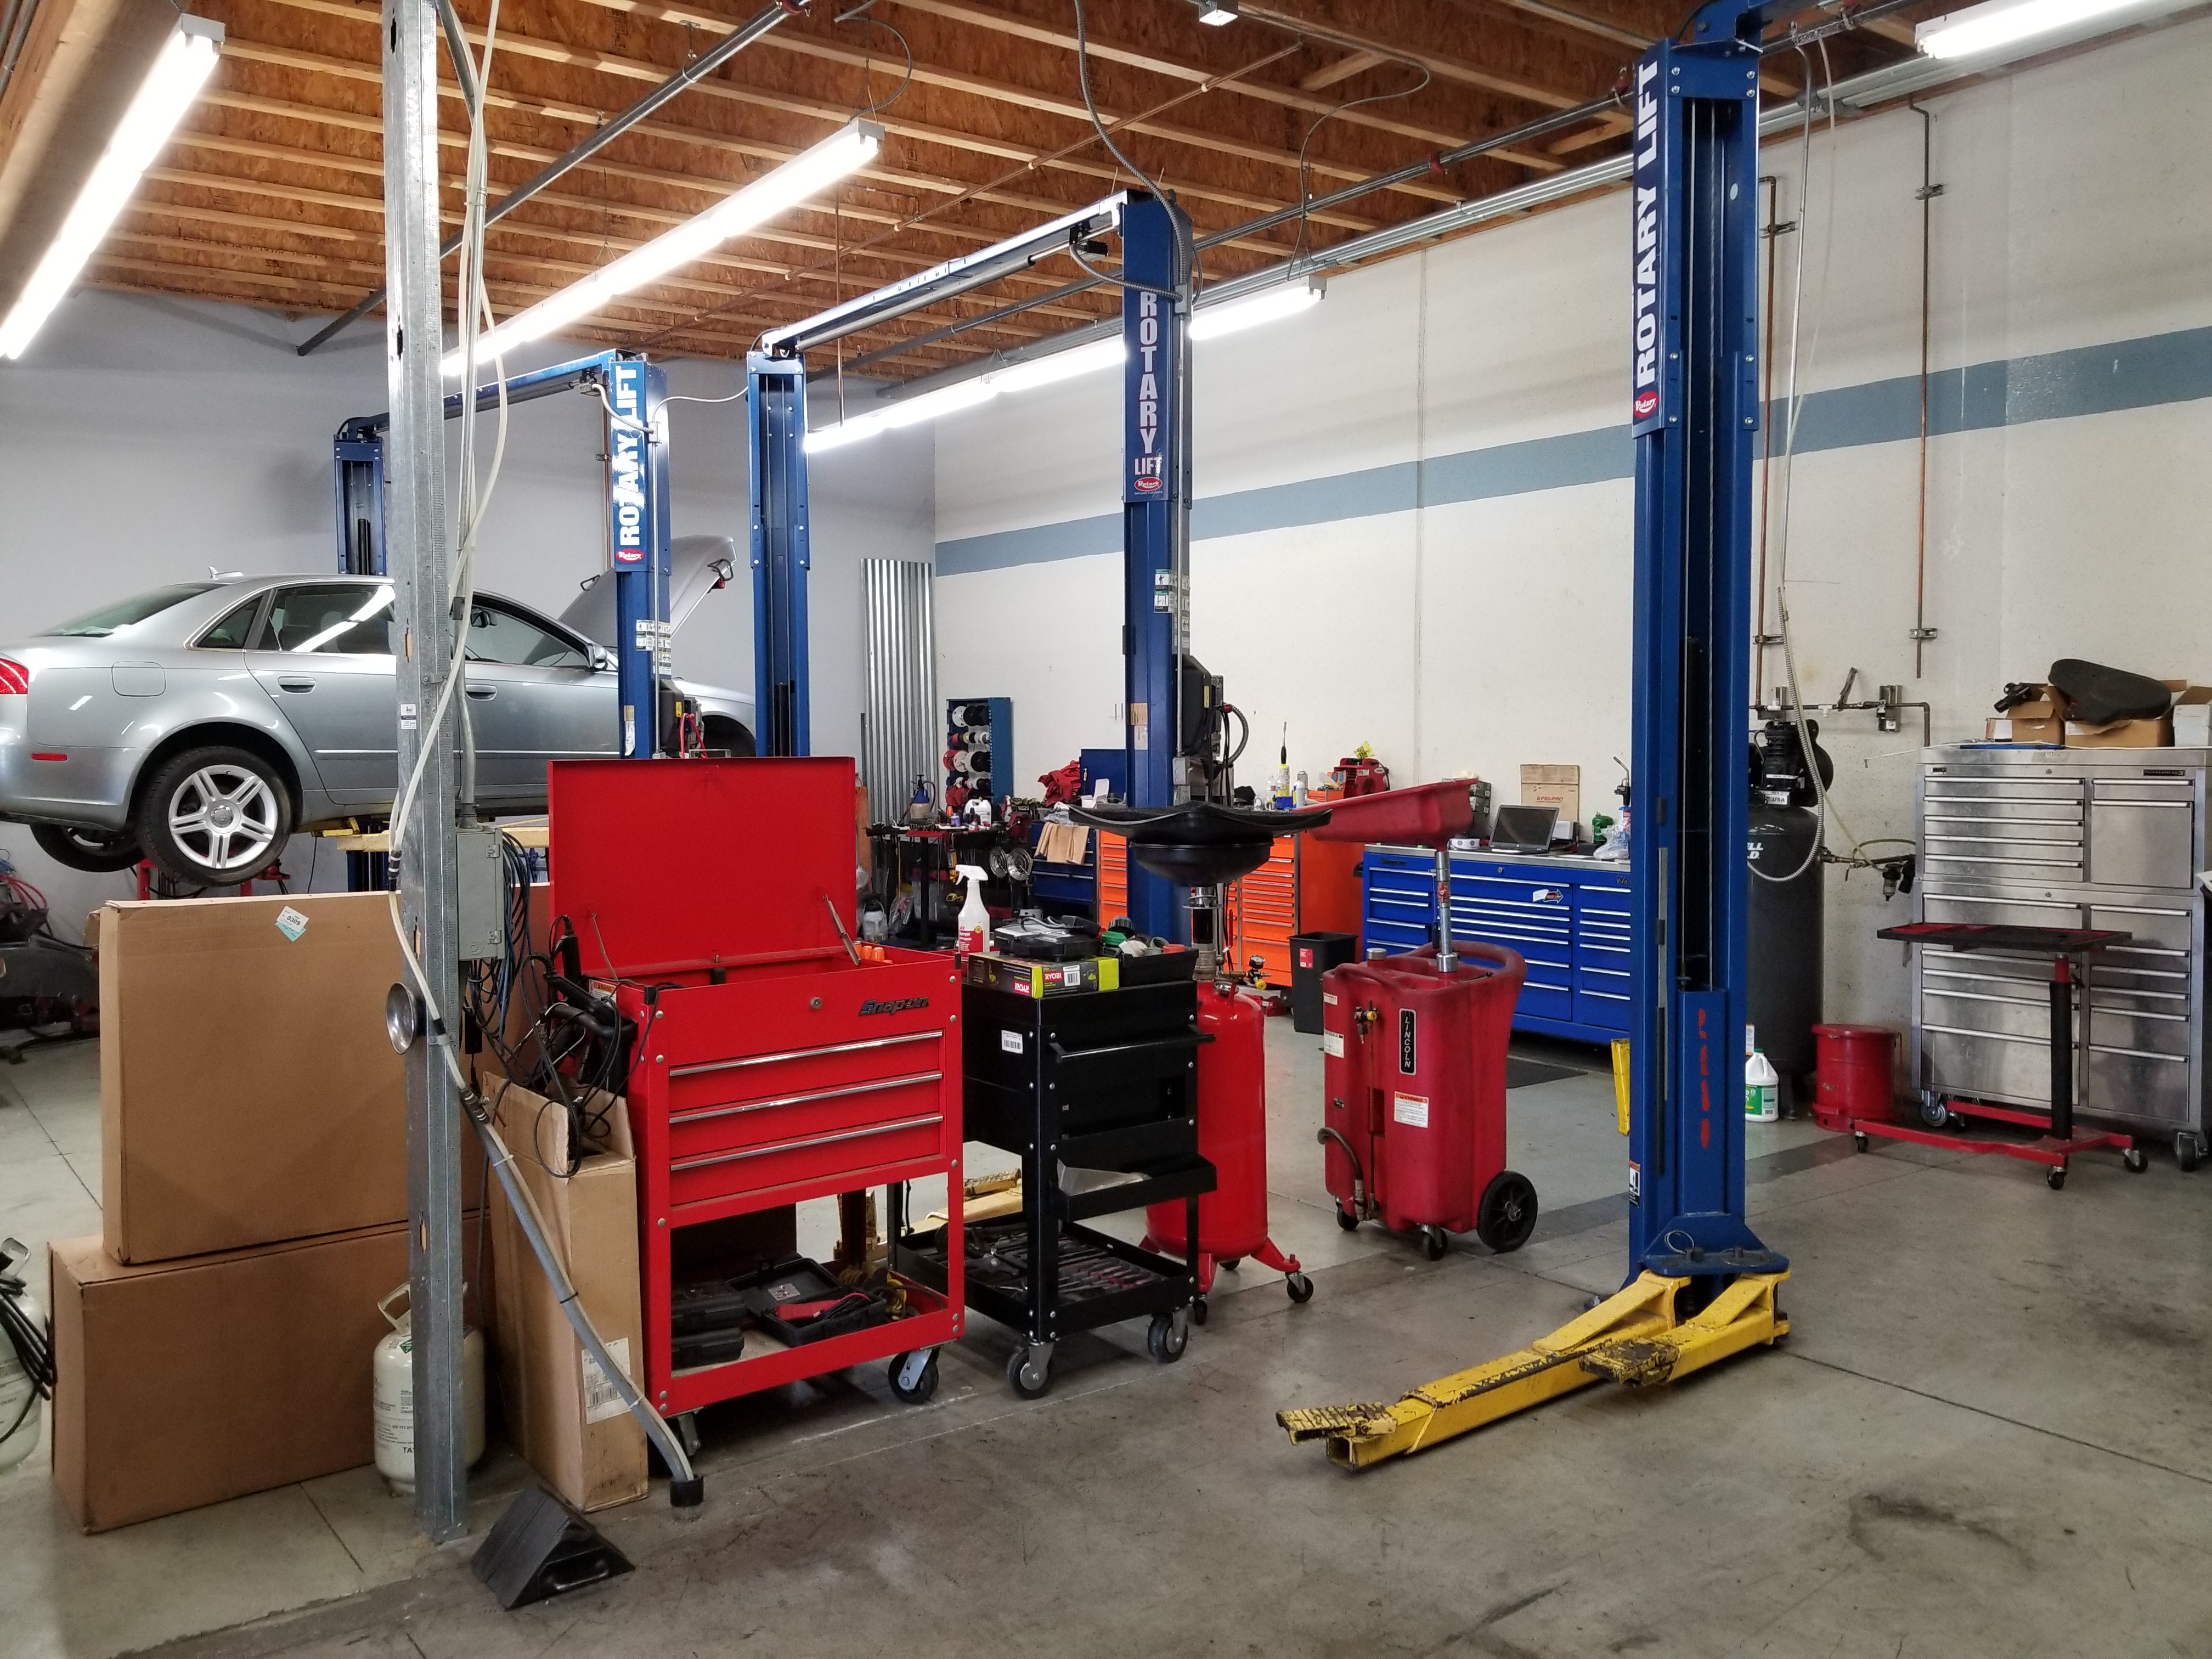 SF Auto Repair Full Services with Growth Potential